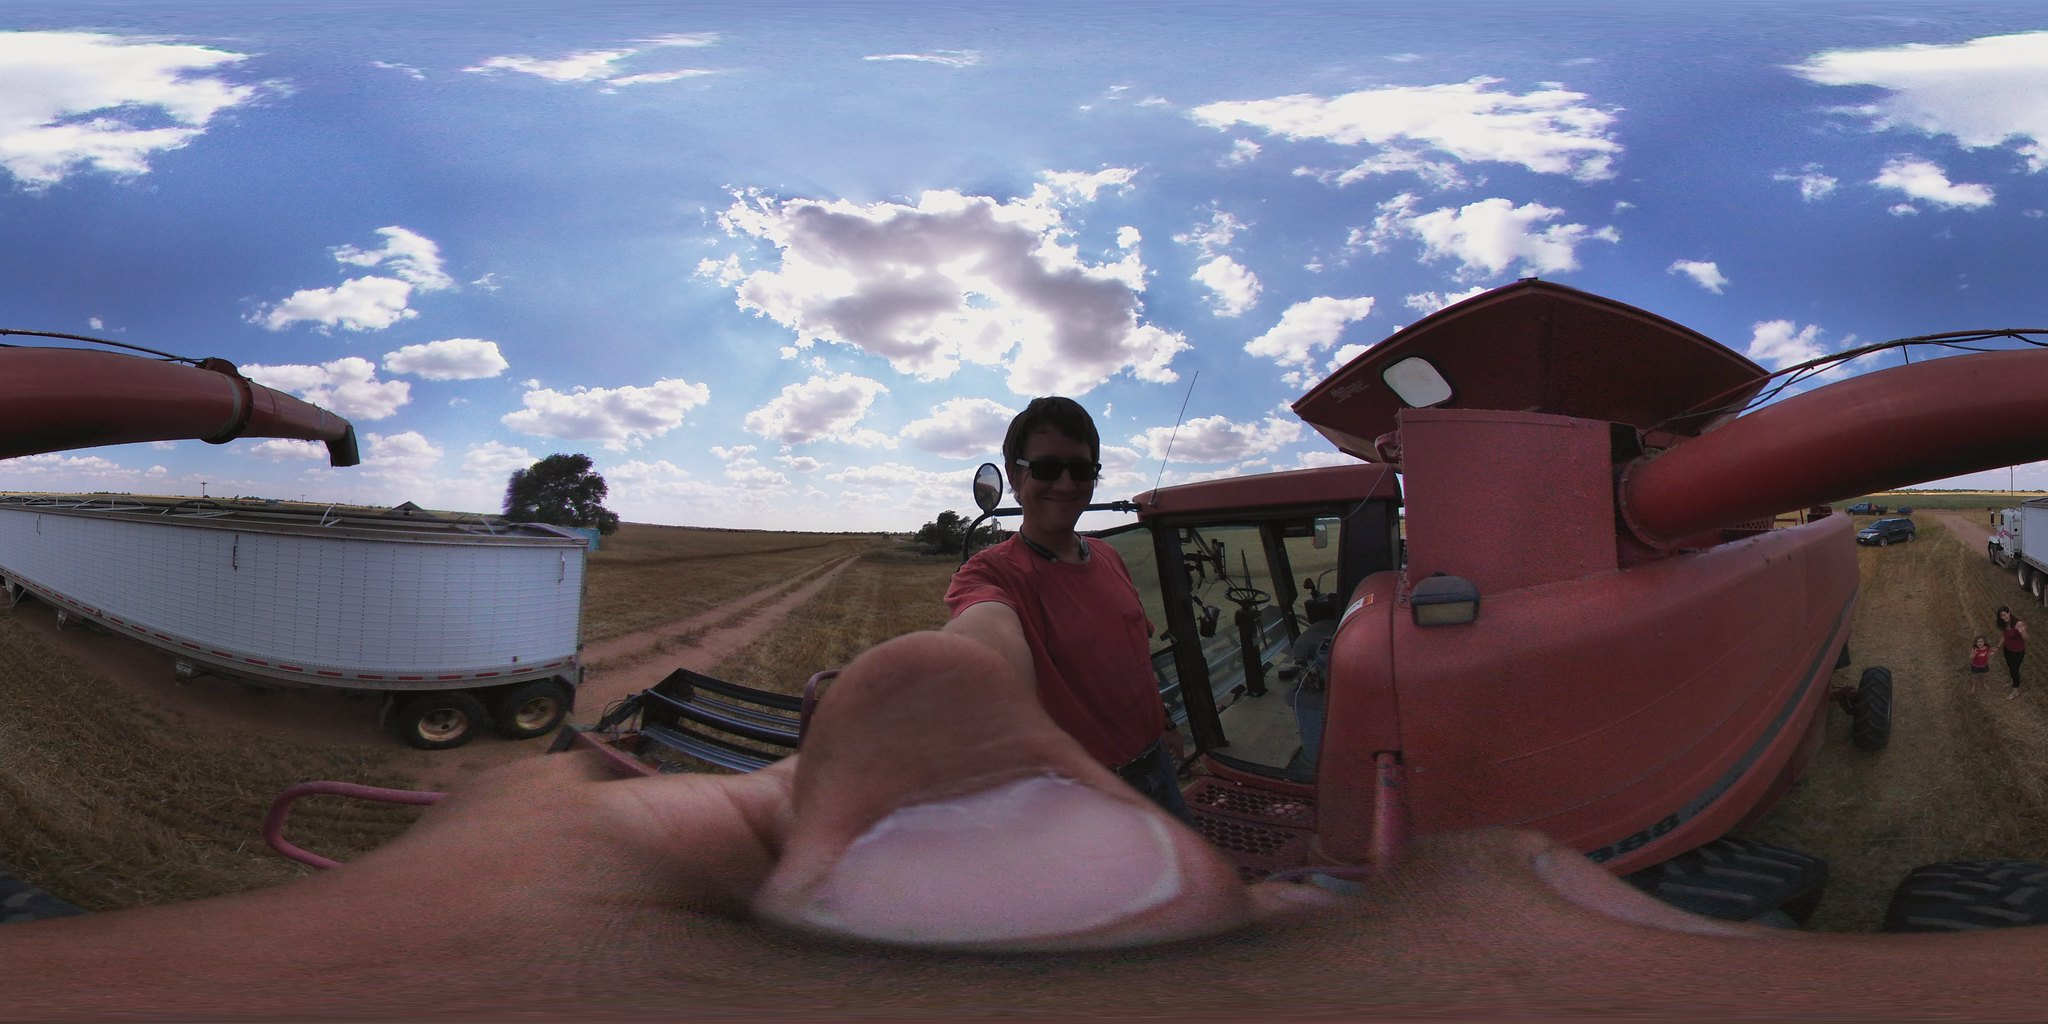 Harvest 2016 with the LG 360 cam #vzreview